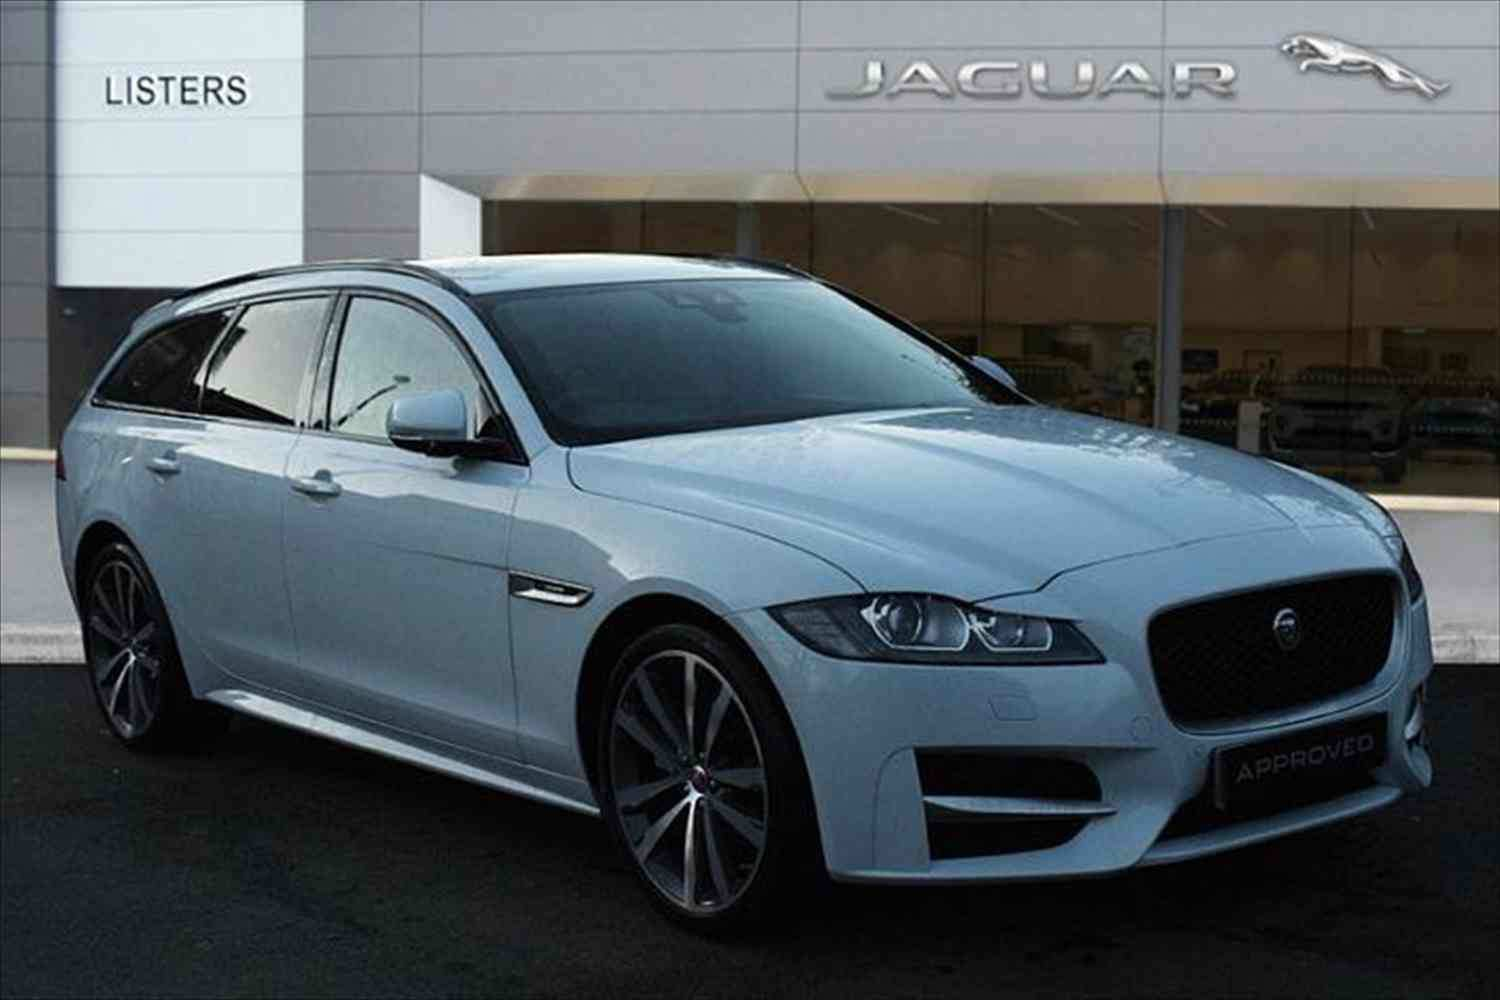 24 Great 2020 Jaguar Sportbrake Exterior for 2020 Jaguar Sportbrake